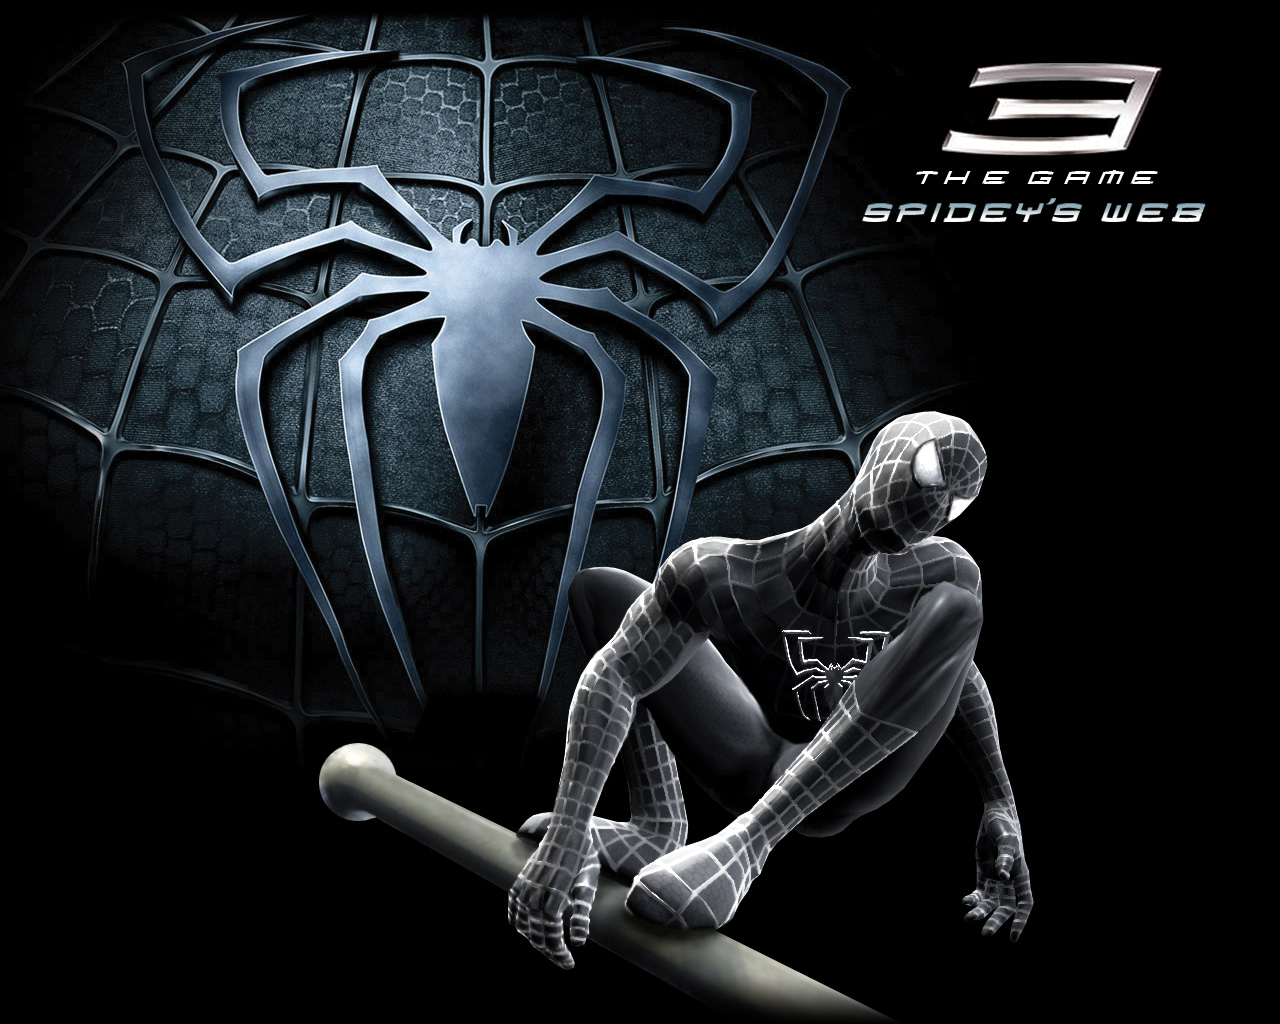 Spider-man 3 wallpapers wallpaper cave.